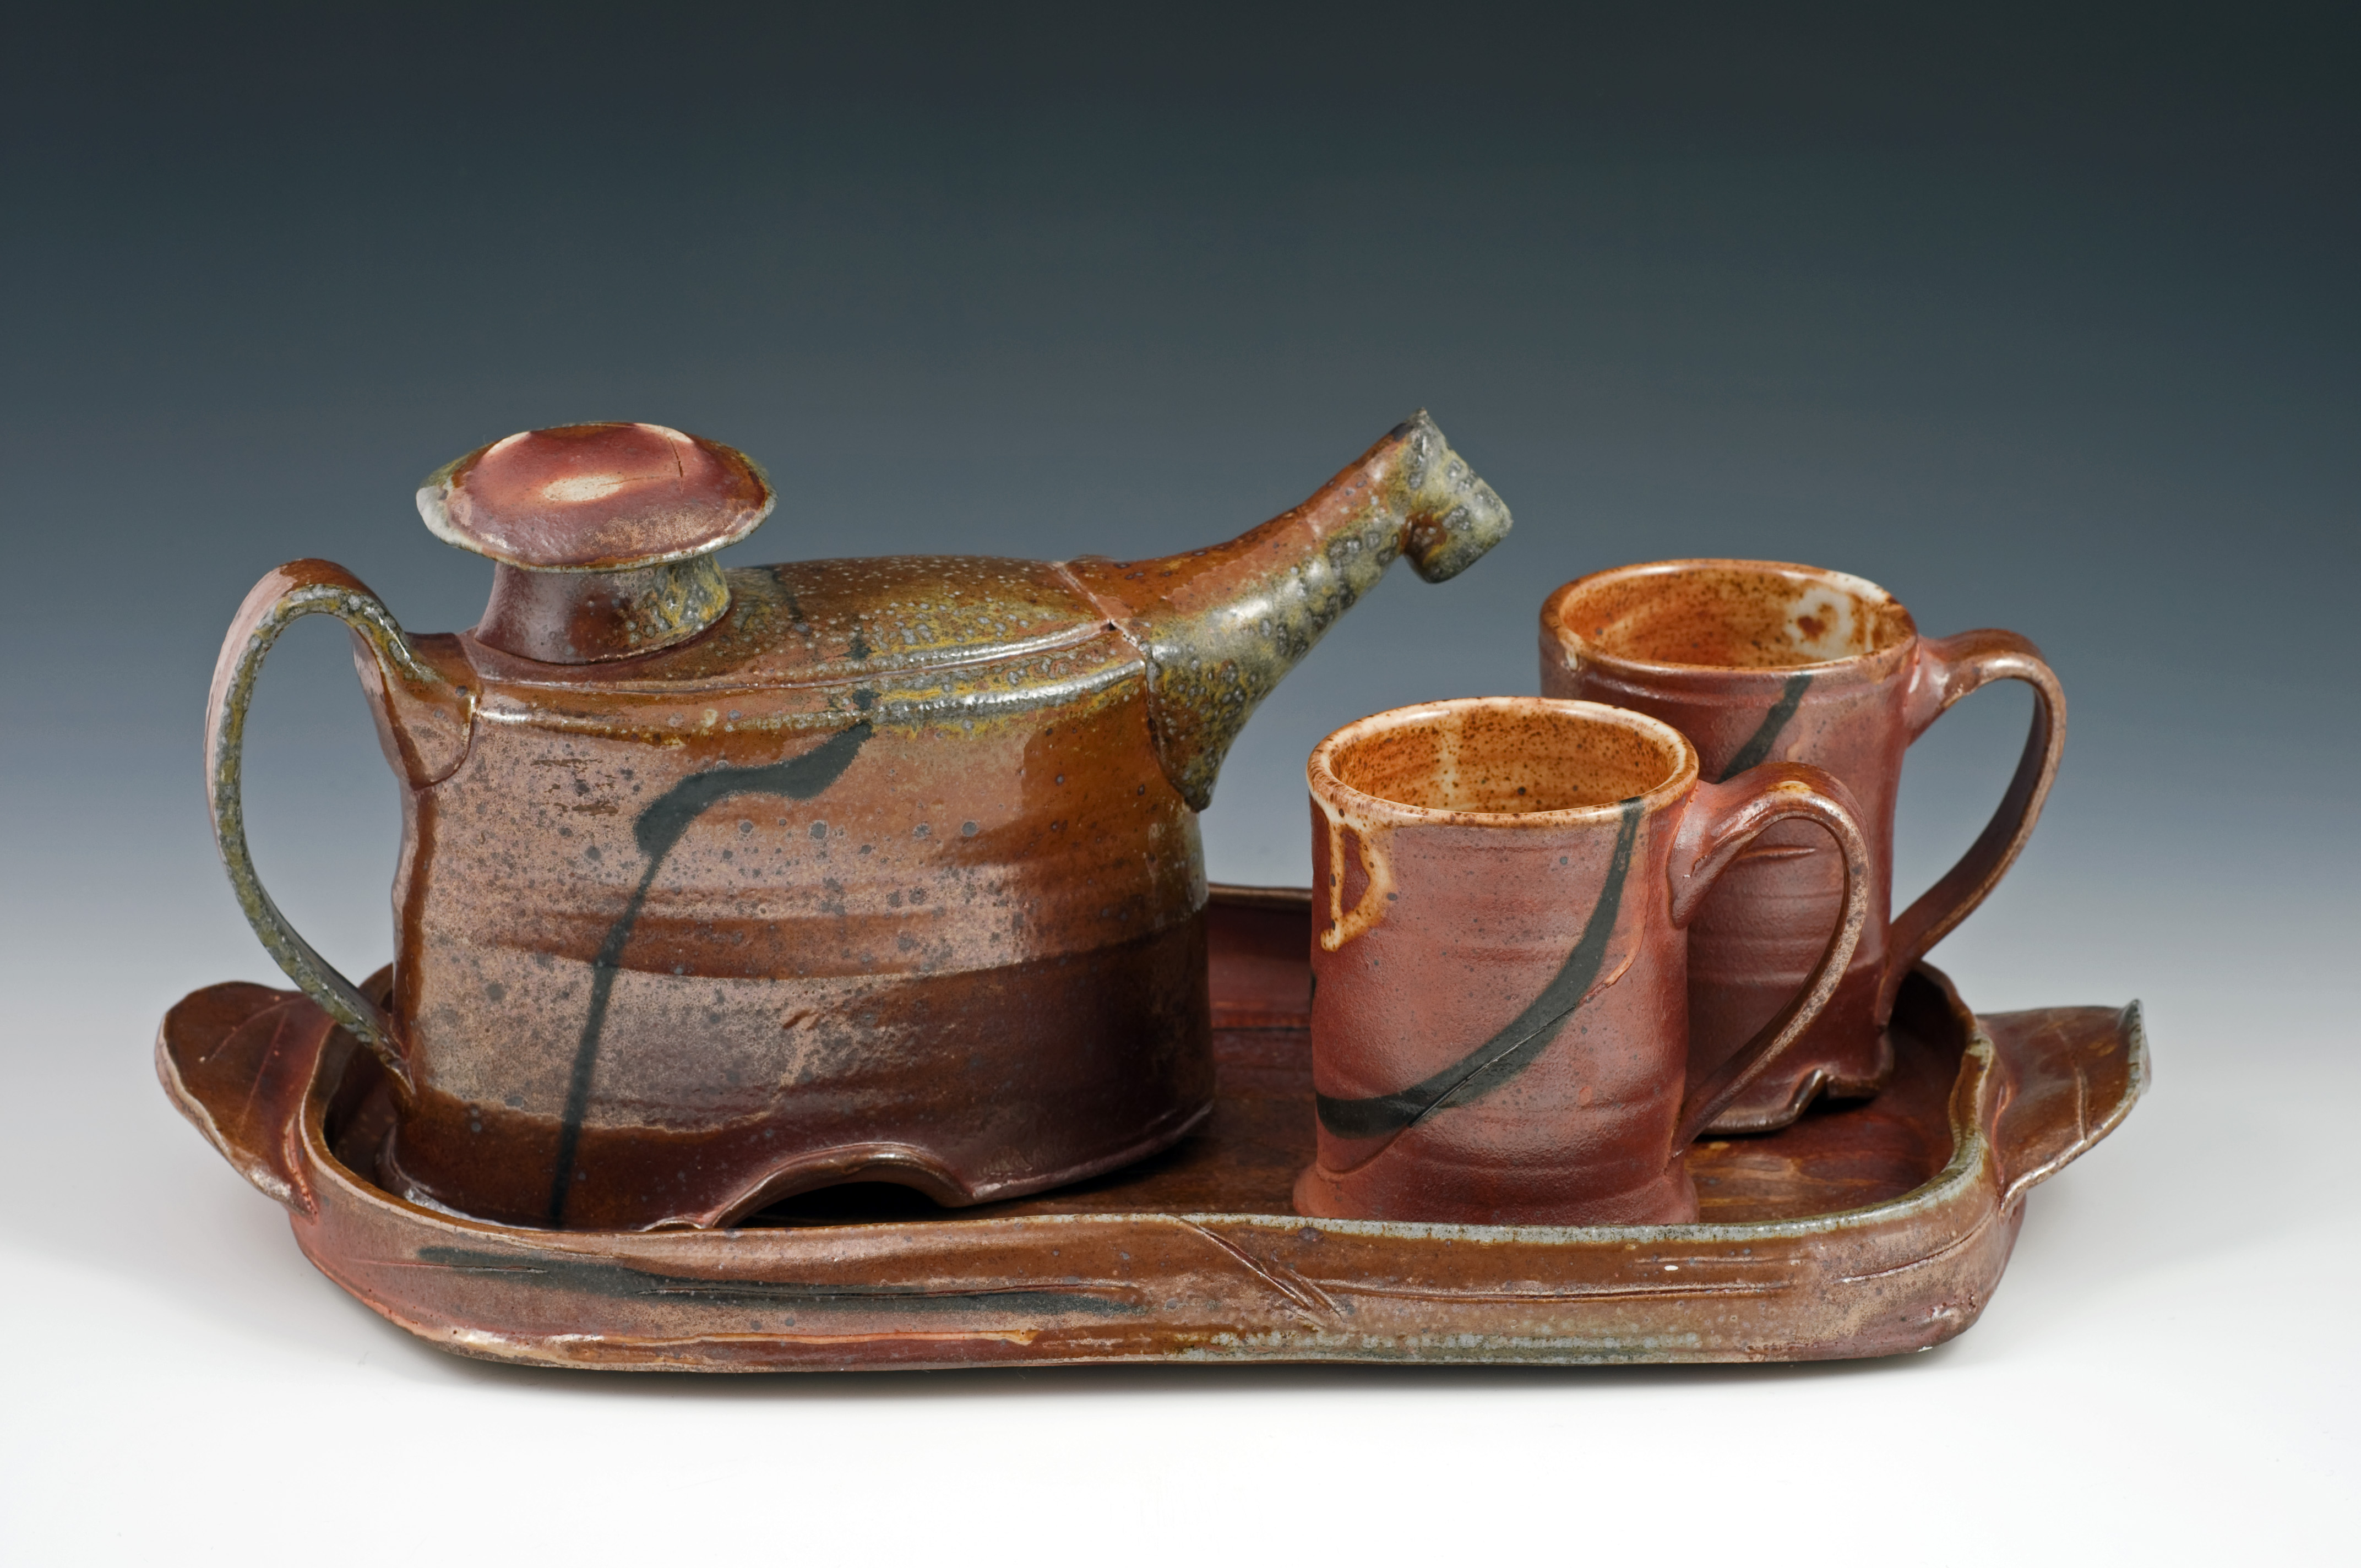 Glazed clay tea cups and pitcher on a tray by Sandra Dalton-Shaughnessey.